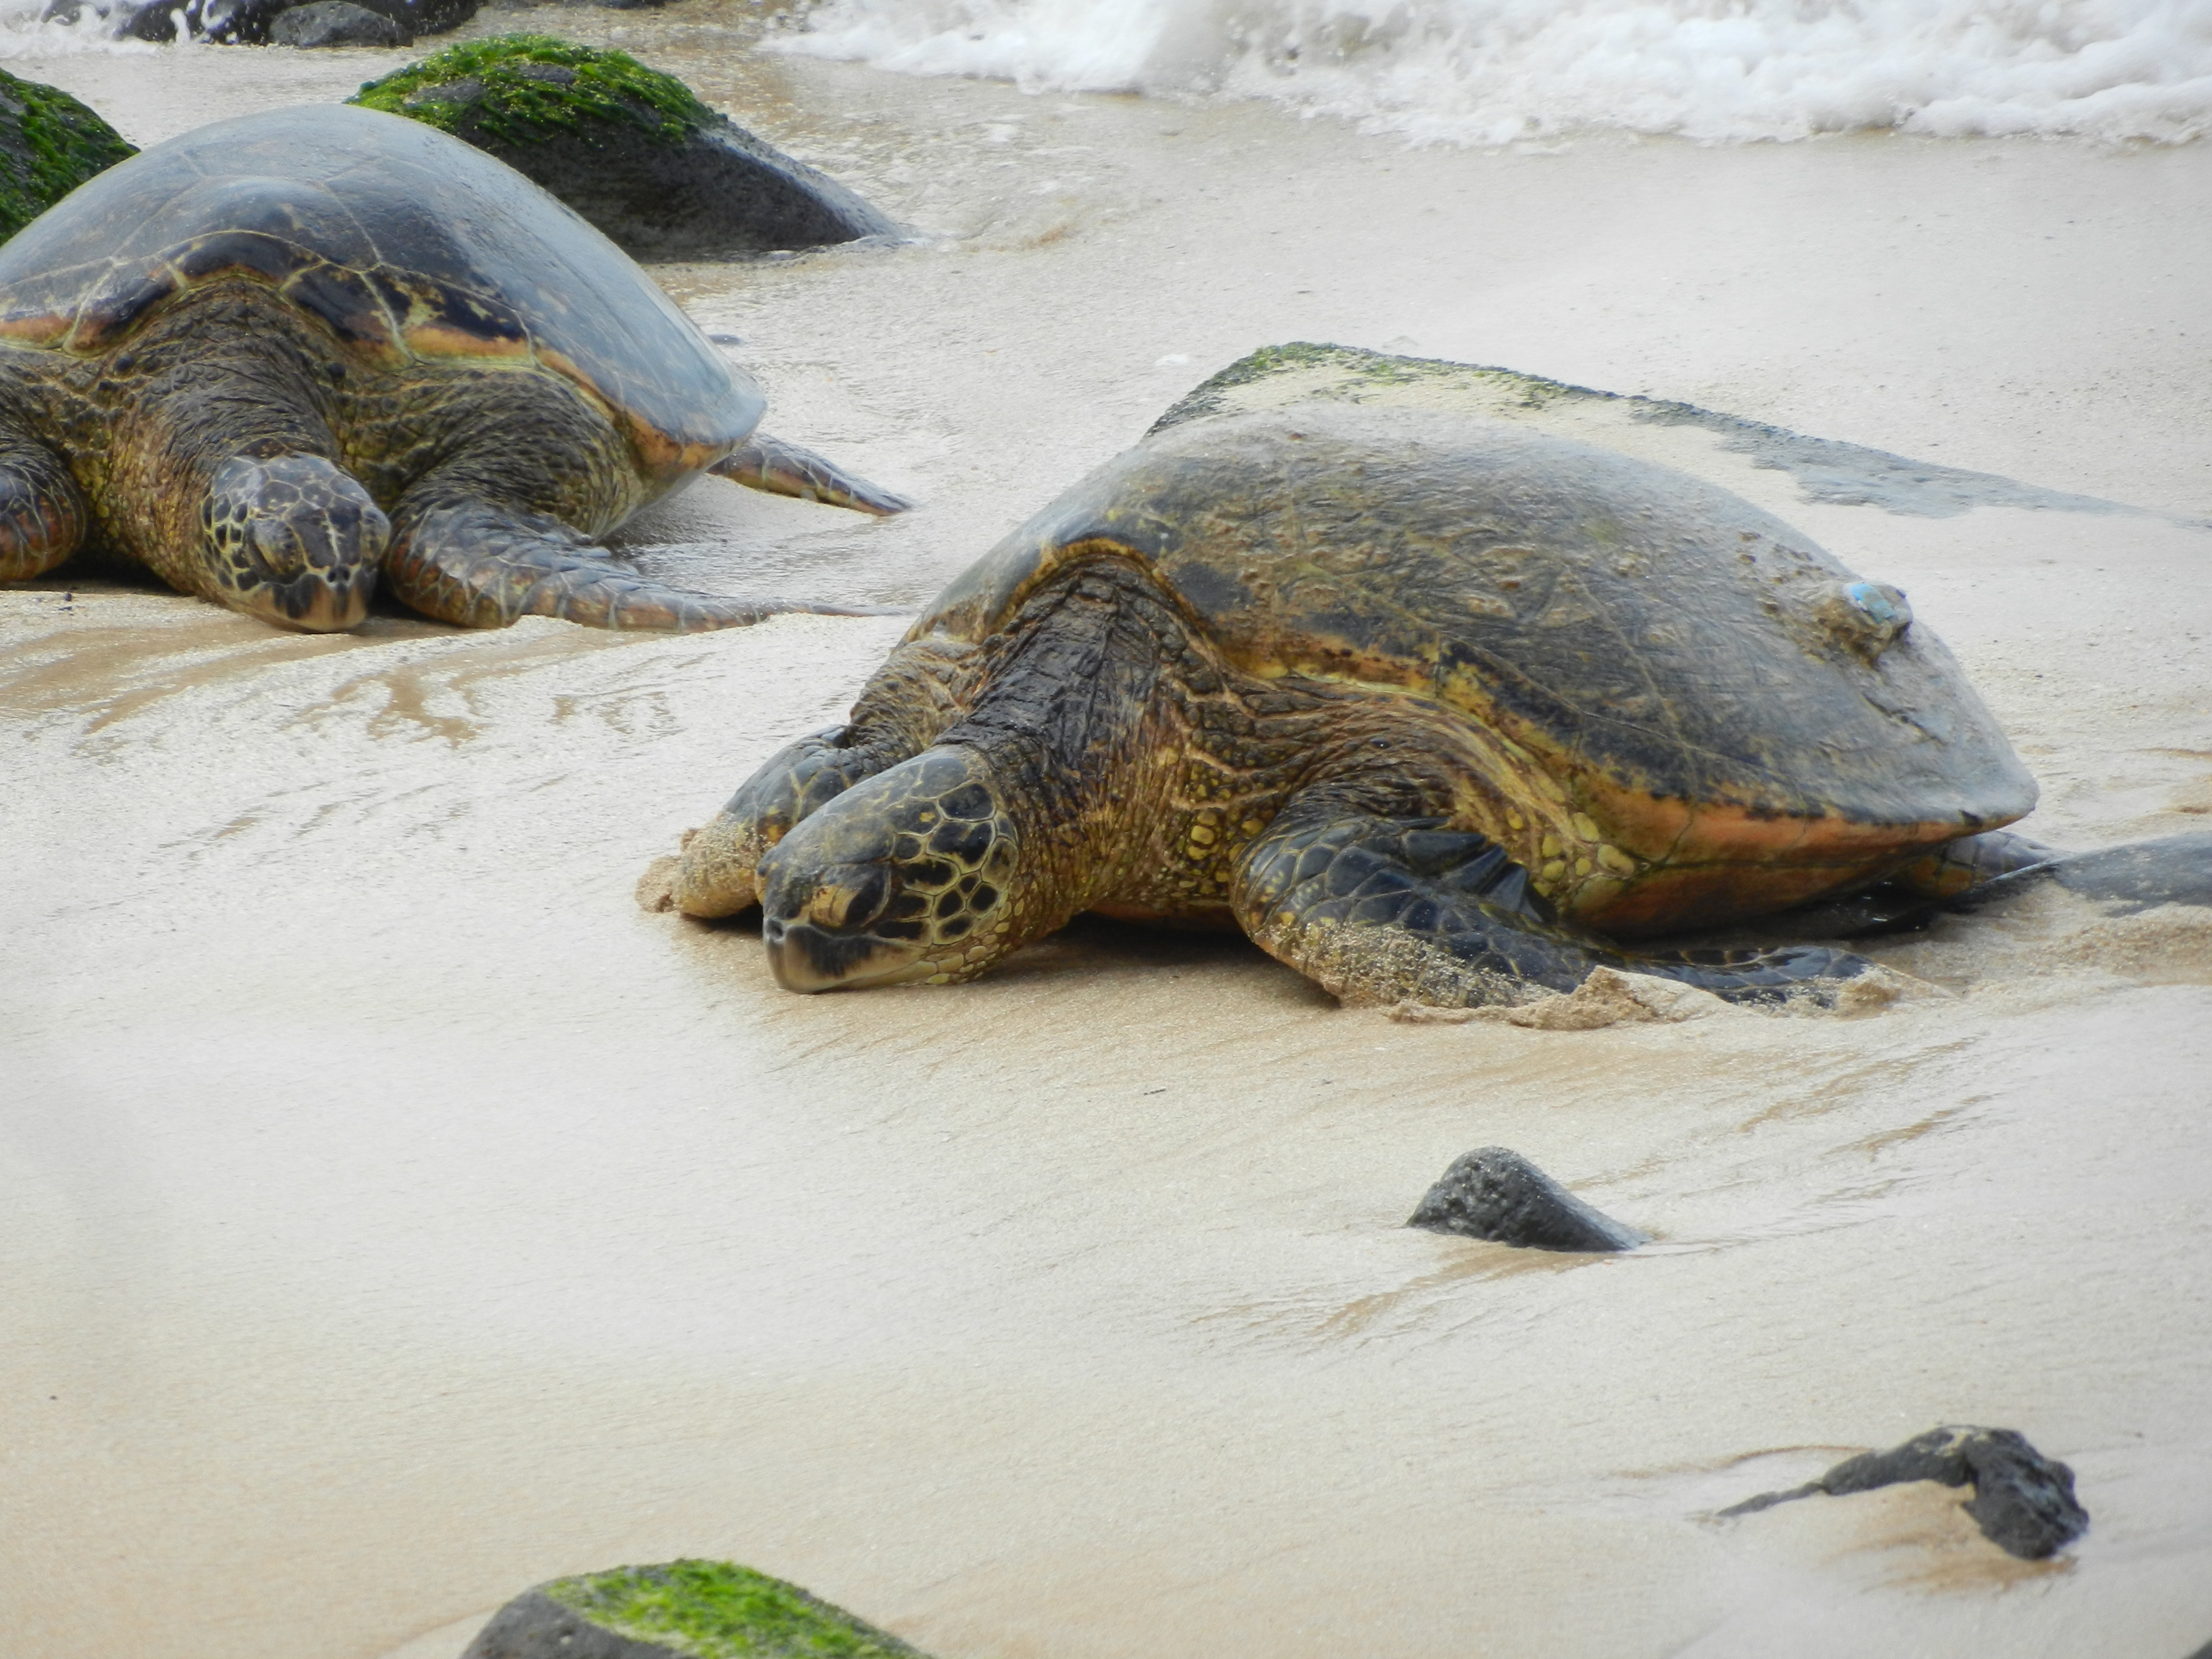 Two sea turtles laying on a beach.